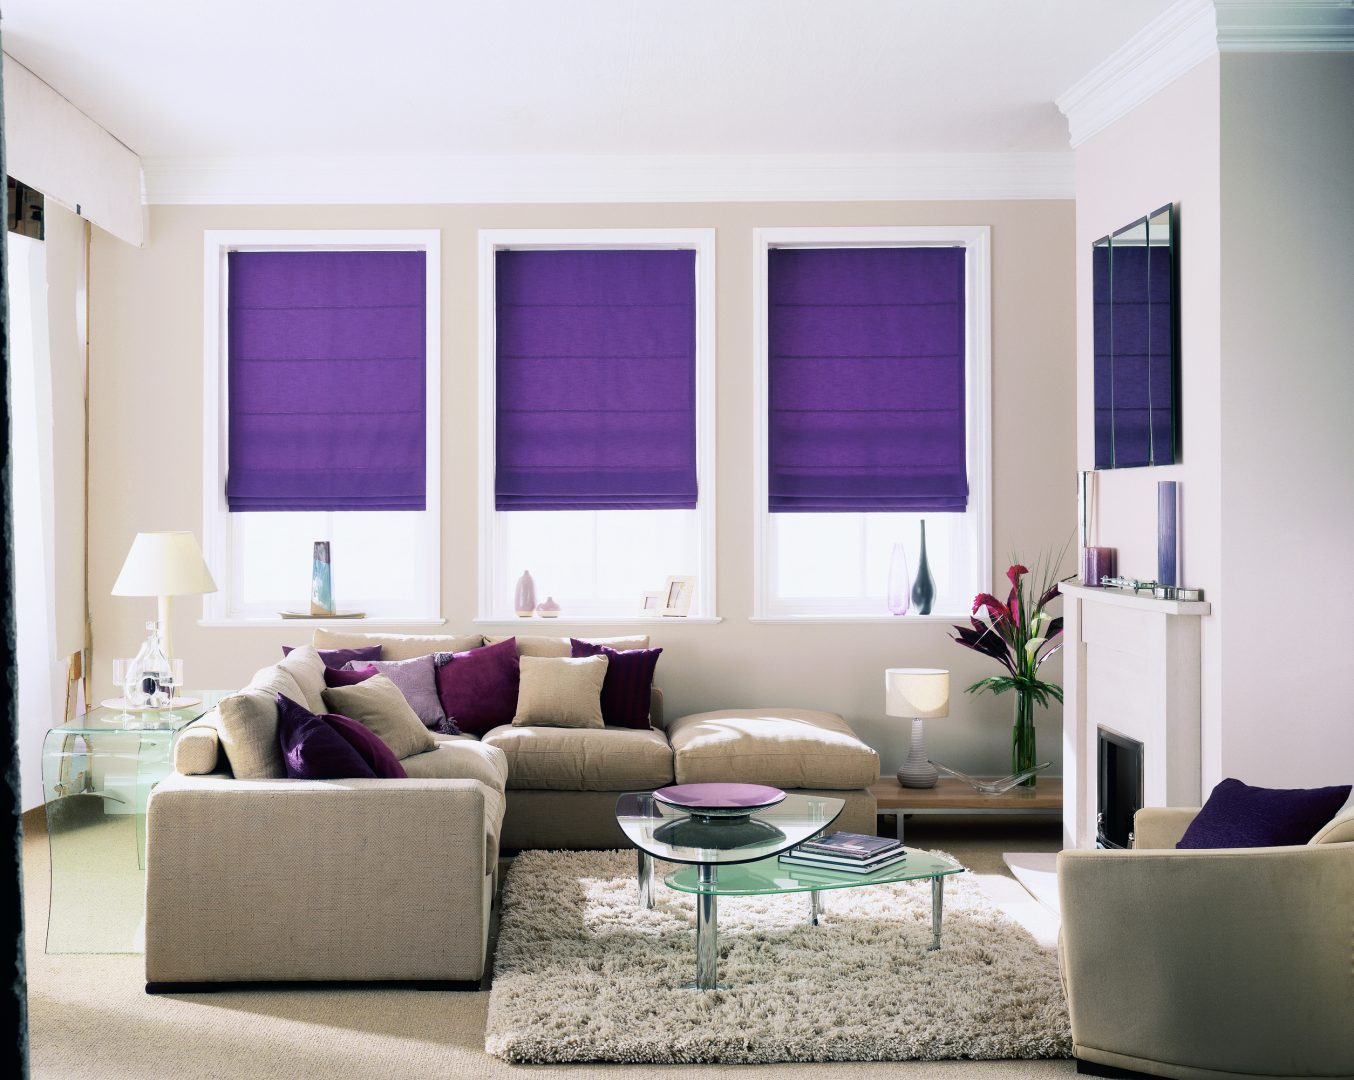 Cortinas y estores alutherm for Cortinas y estores modernos